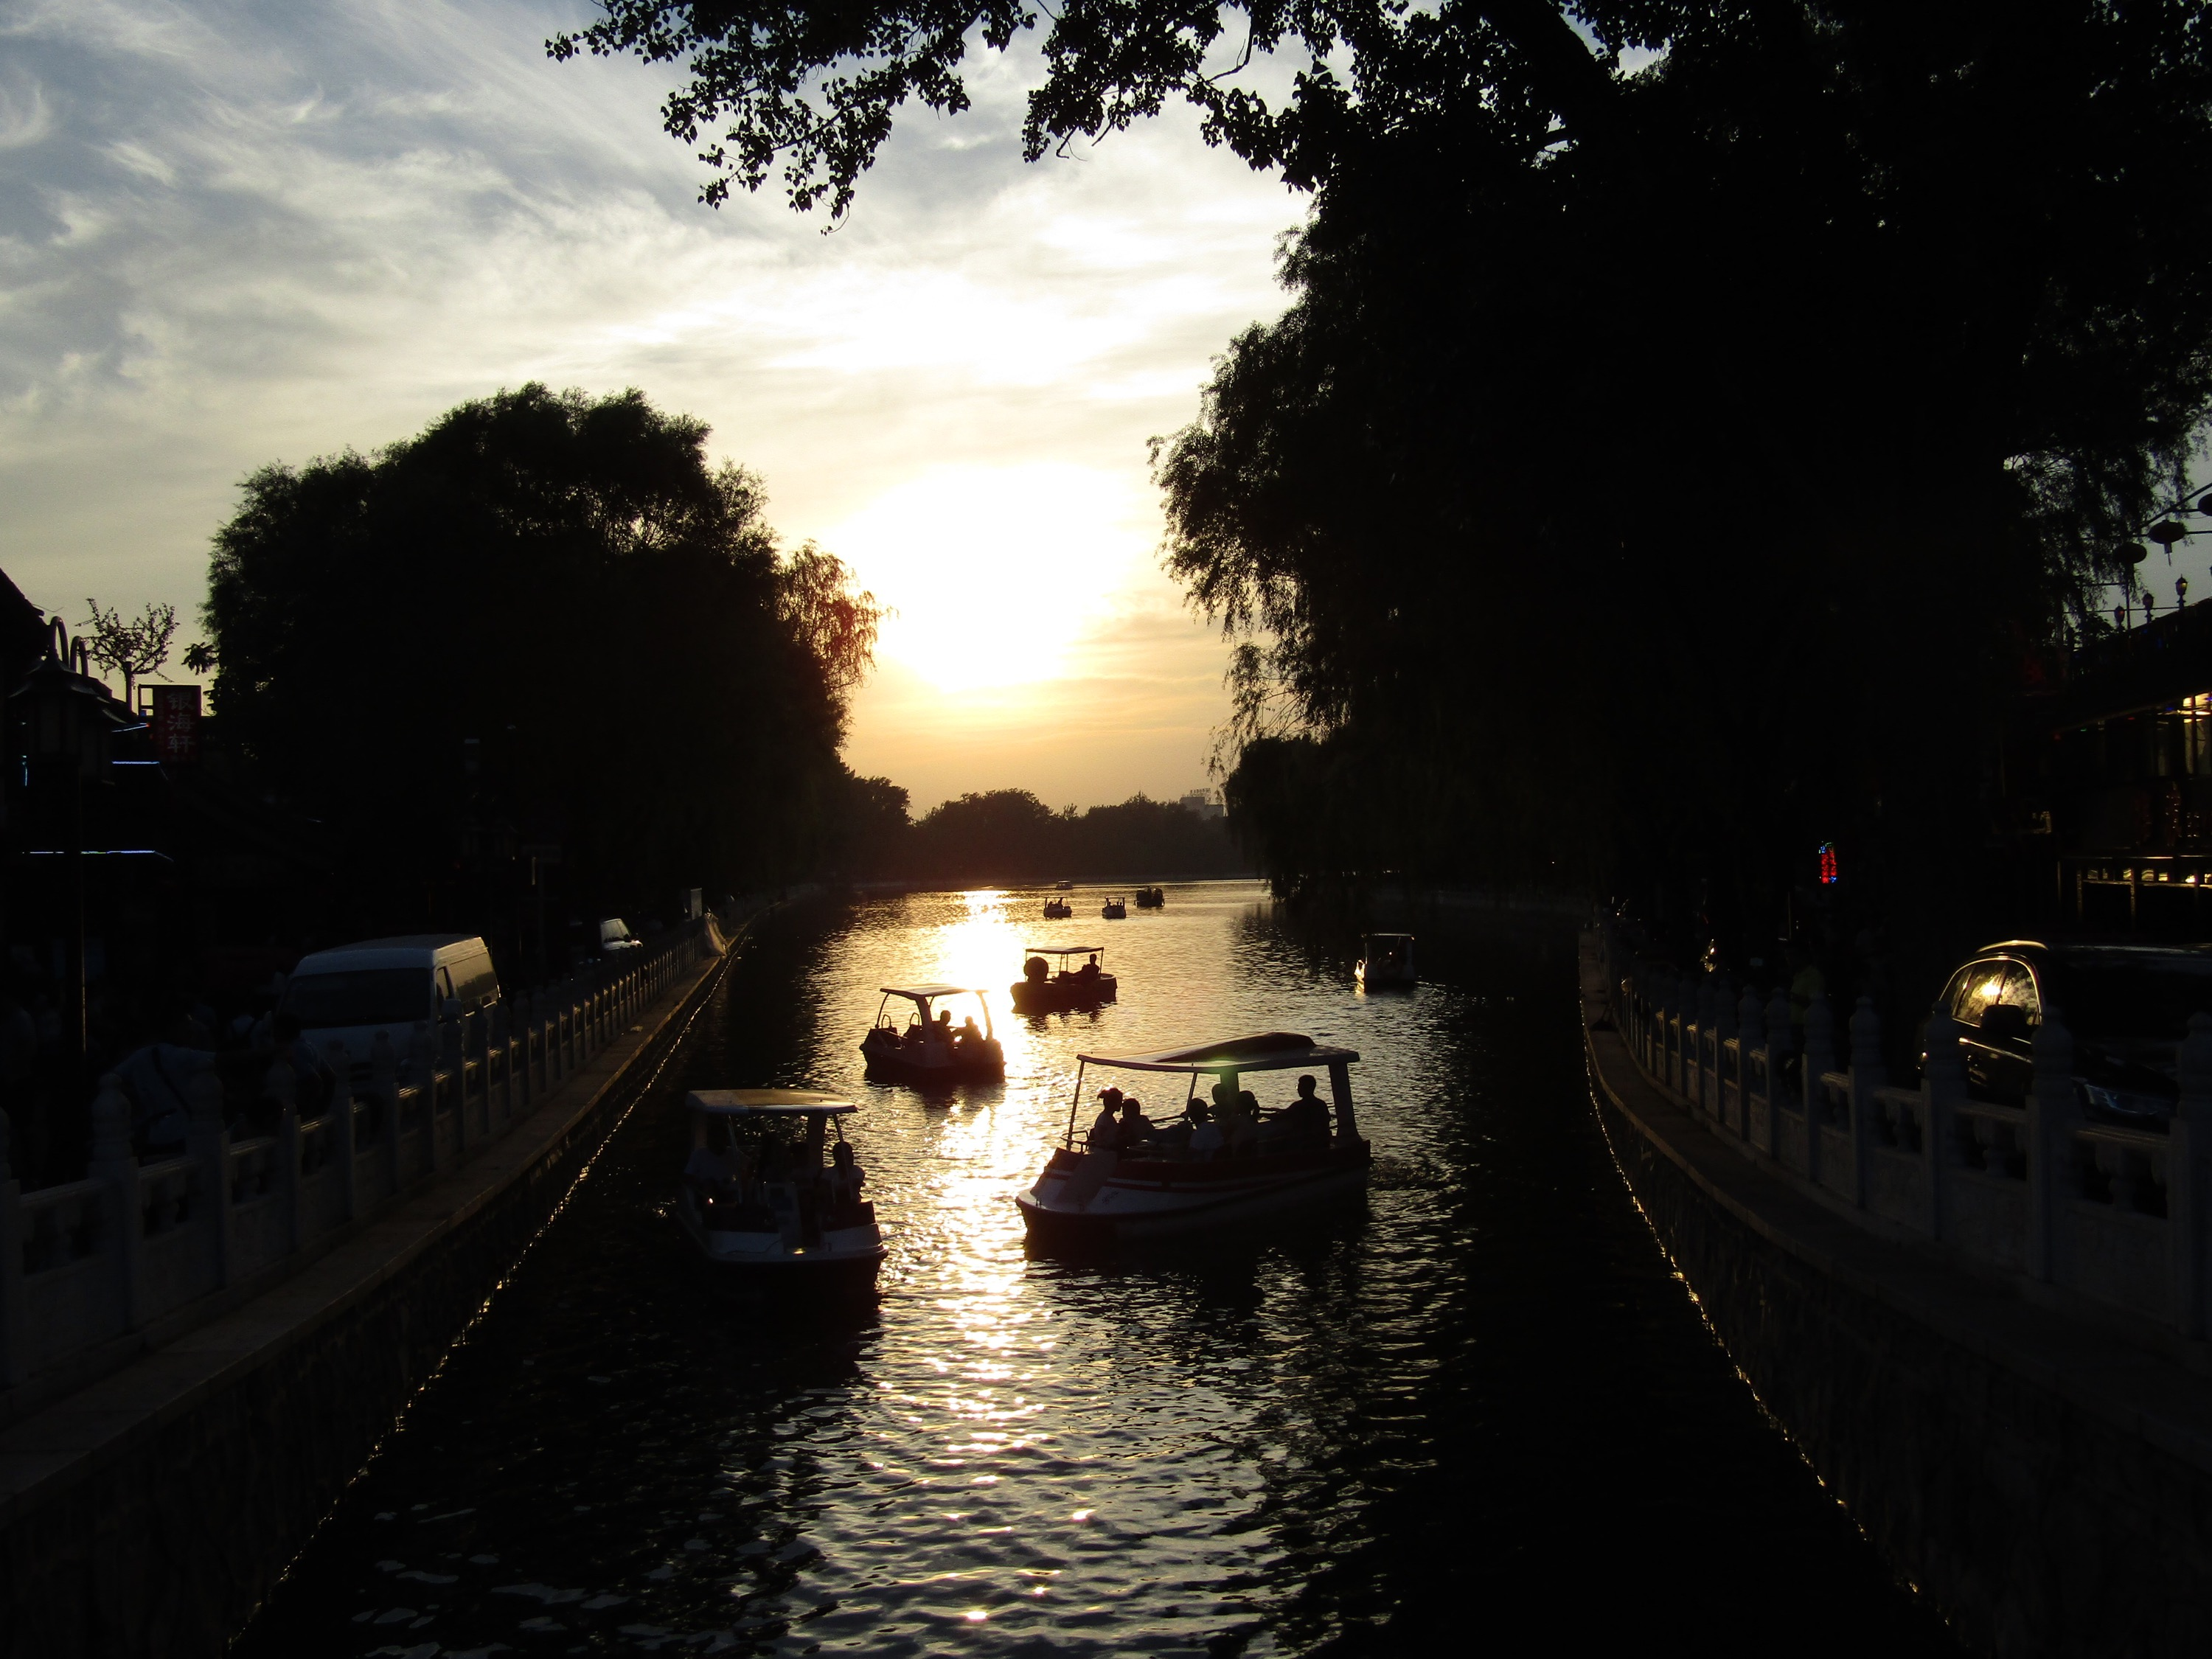 Sunset over Hoihai Park, a lively riverwalk area surrounded by bars and restaurants featuring live music.